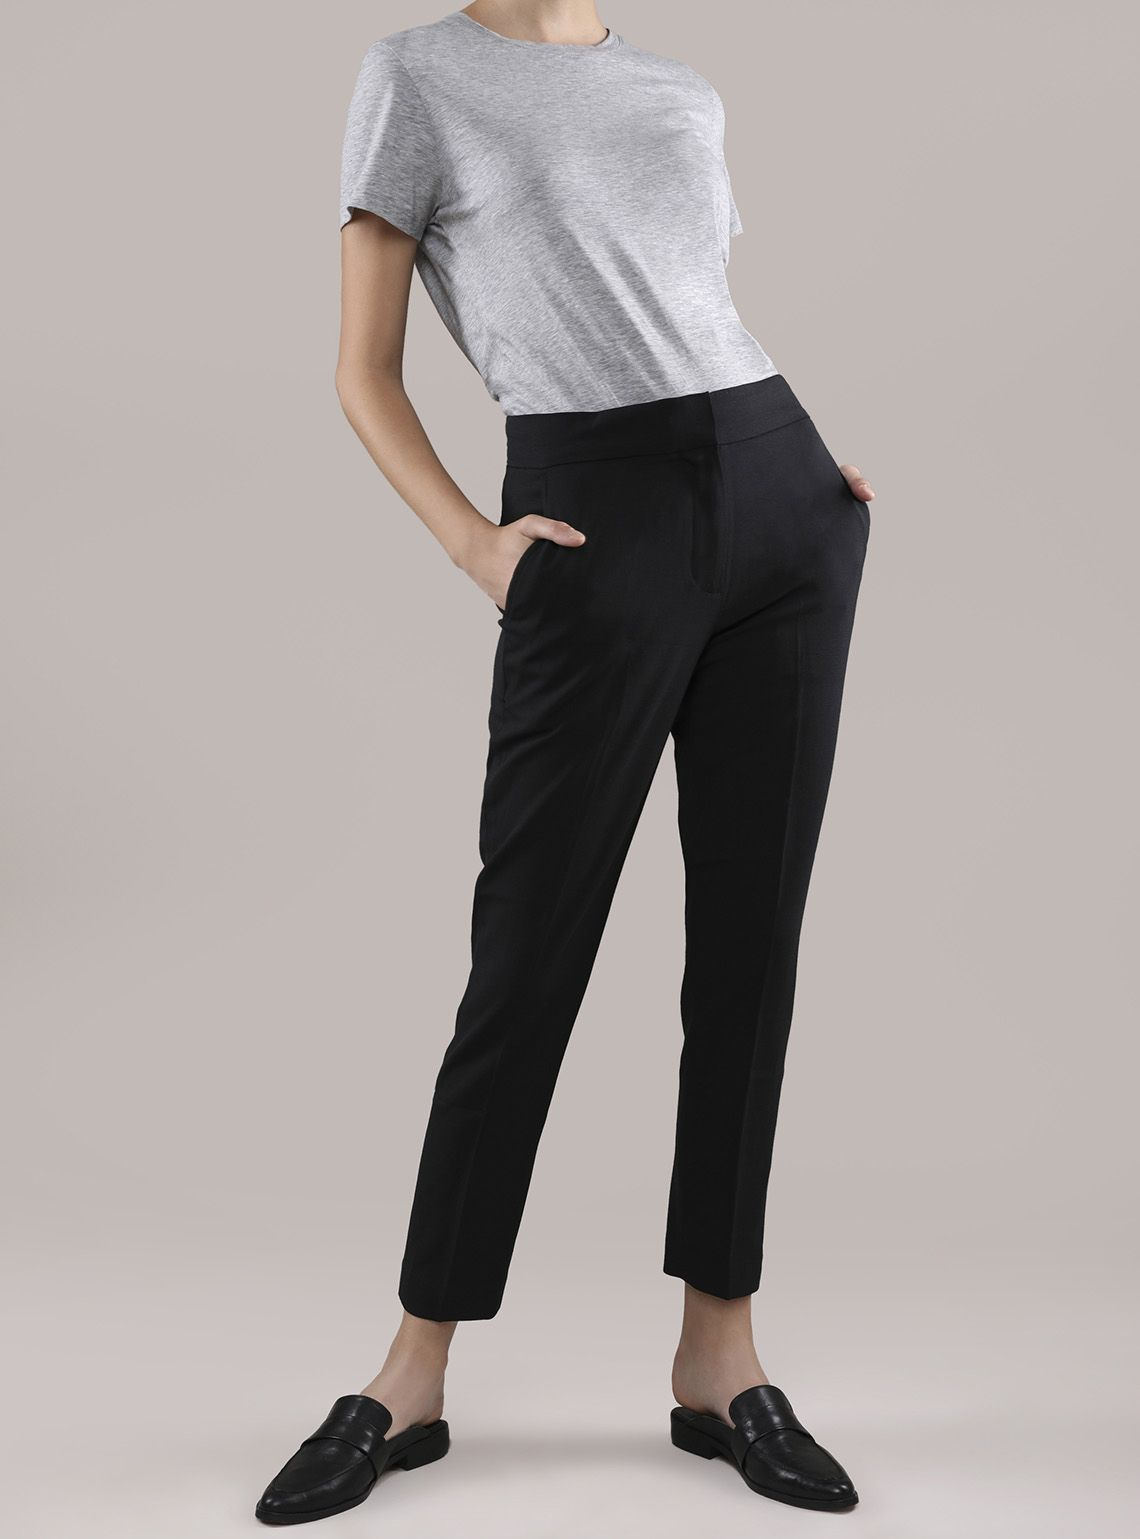 To acquire How to wool wear pants casually picture trends